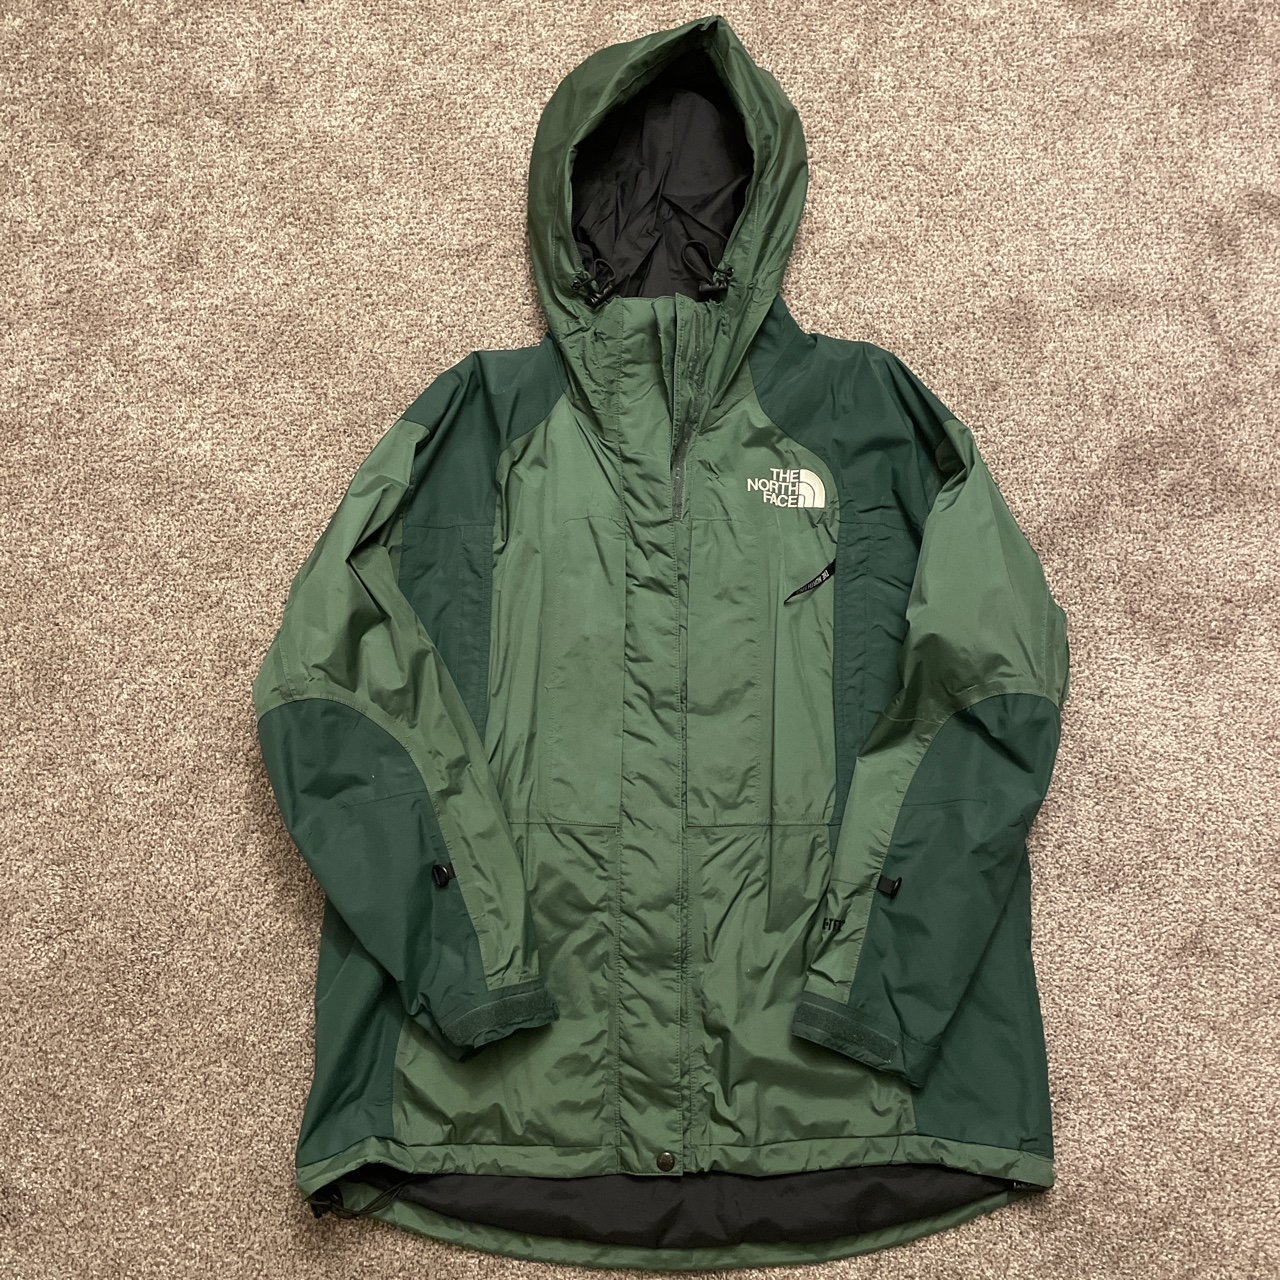 Product Image 1 - Vintage TNF GORE-TEX Shell Jacket Super